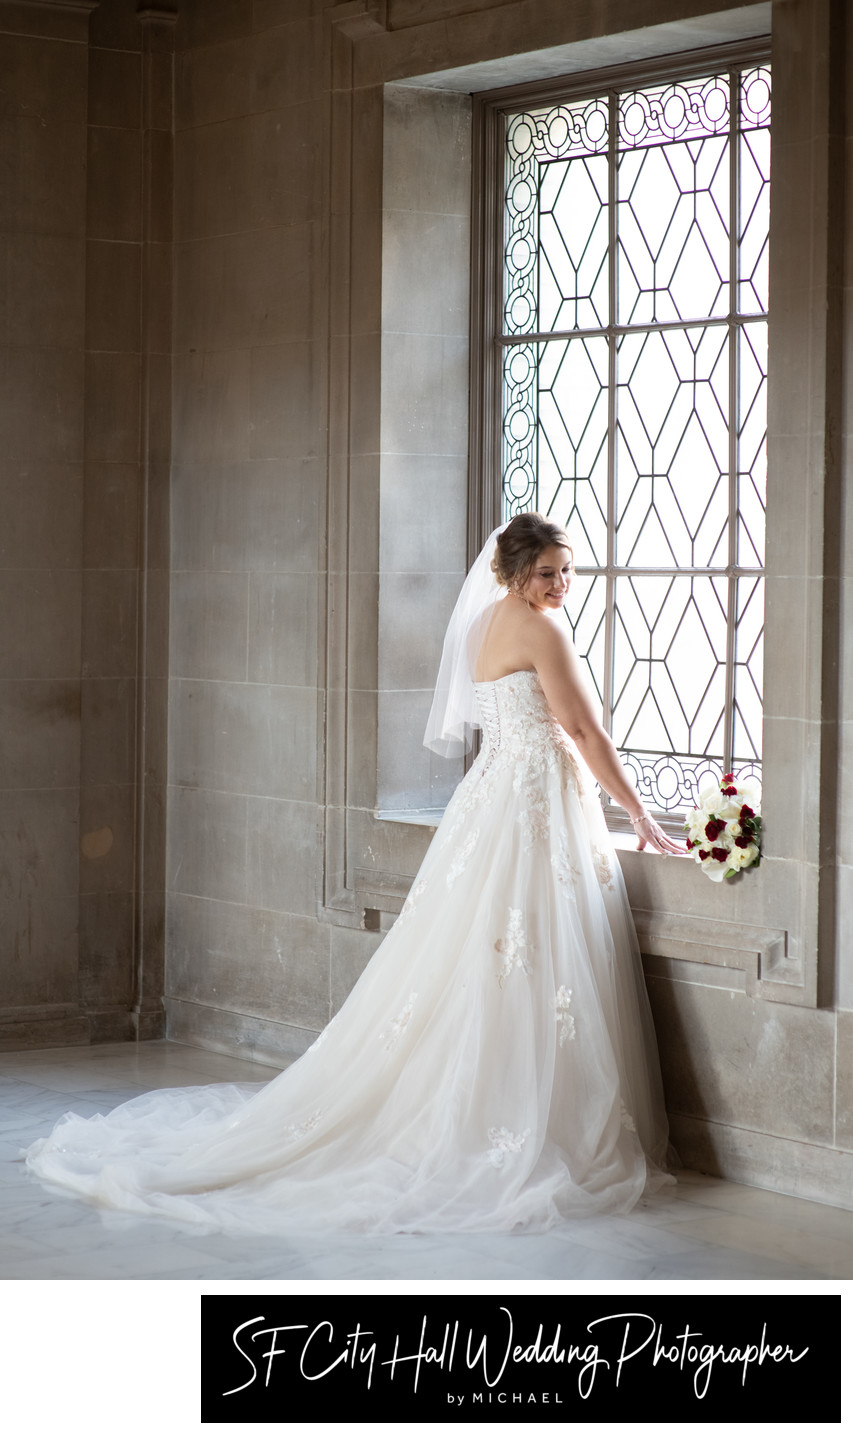 Formal Wedding Photography Portrait of City Hall Bride